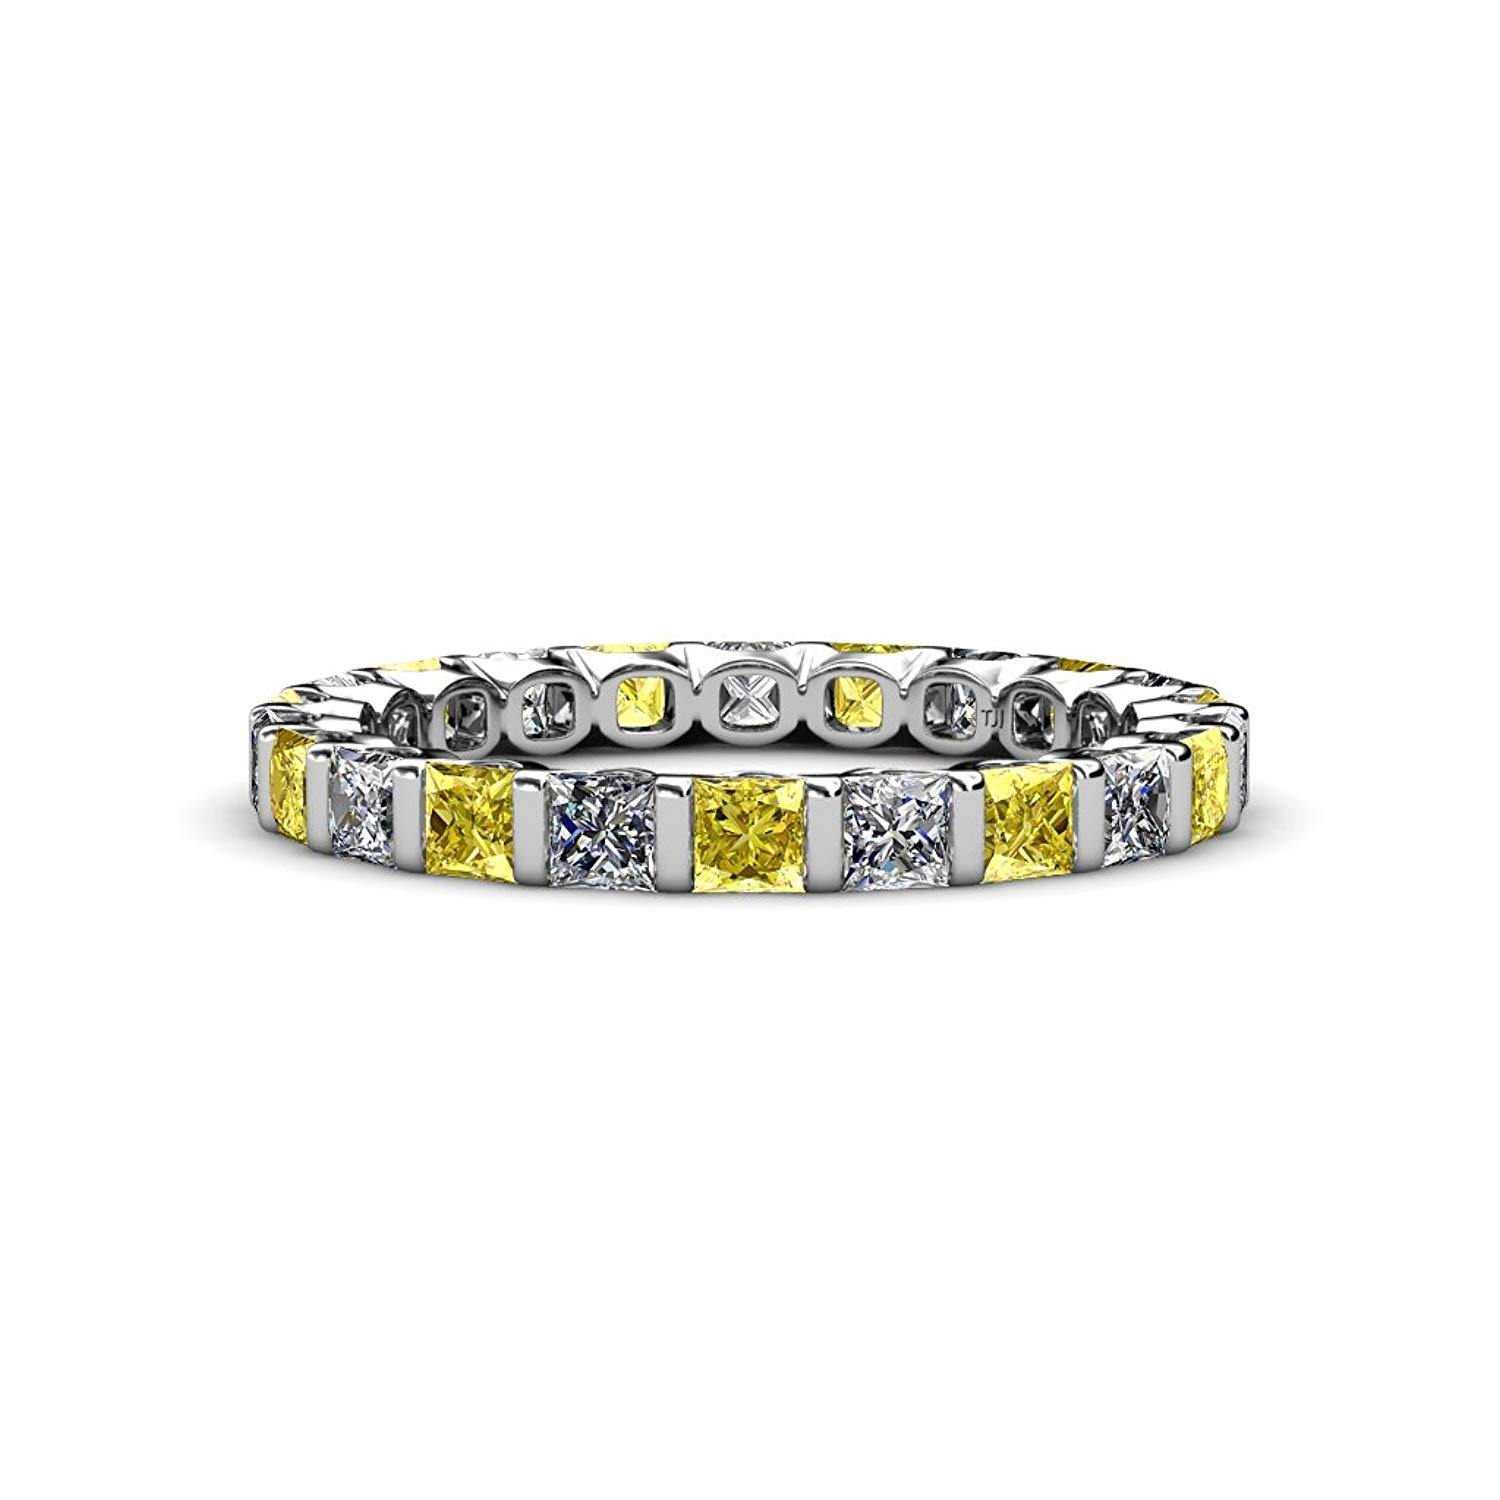 Yellow Sapphire & Diamond Common Channel Set 3 mm Eternity Band 2.52 ct tw to 3.15 ct tw in 14K White Gold.size 4.0 by TriJewels